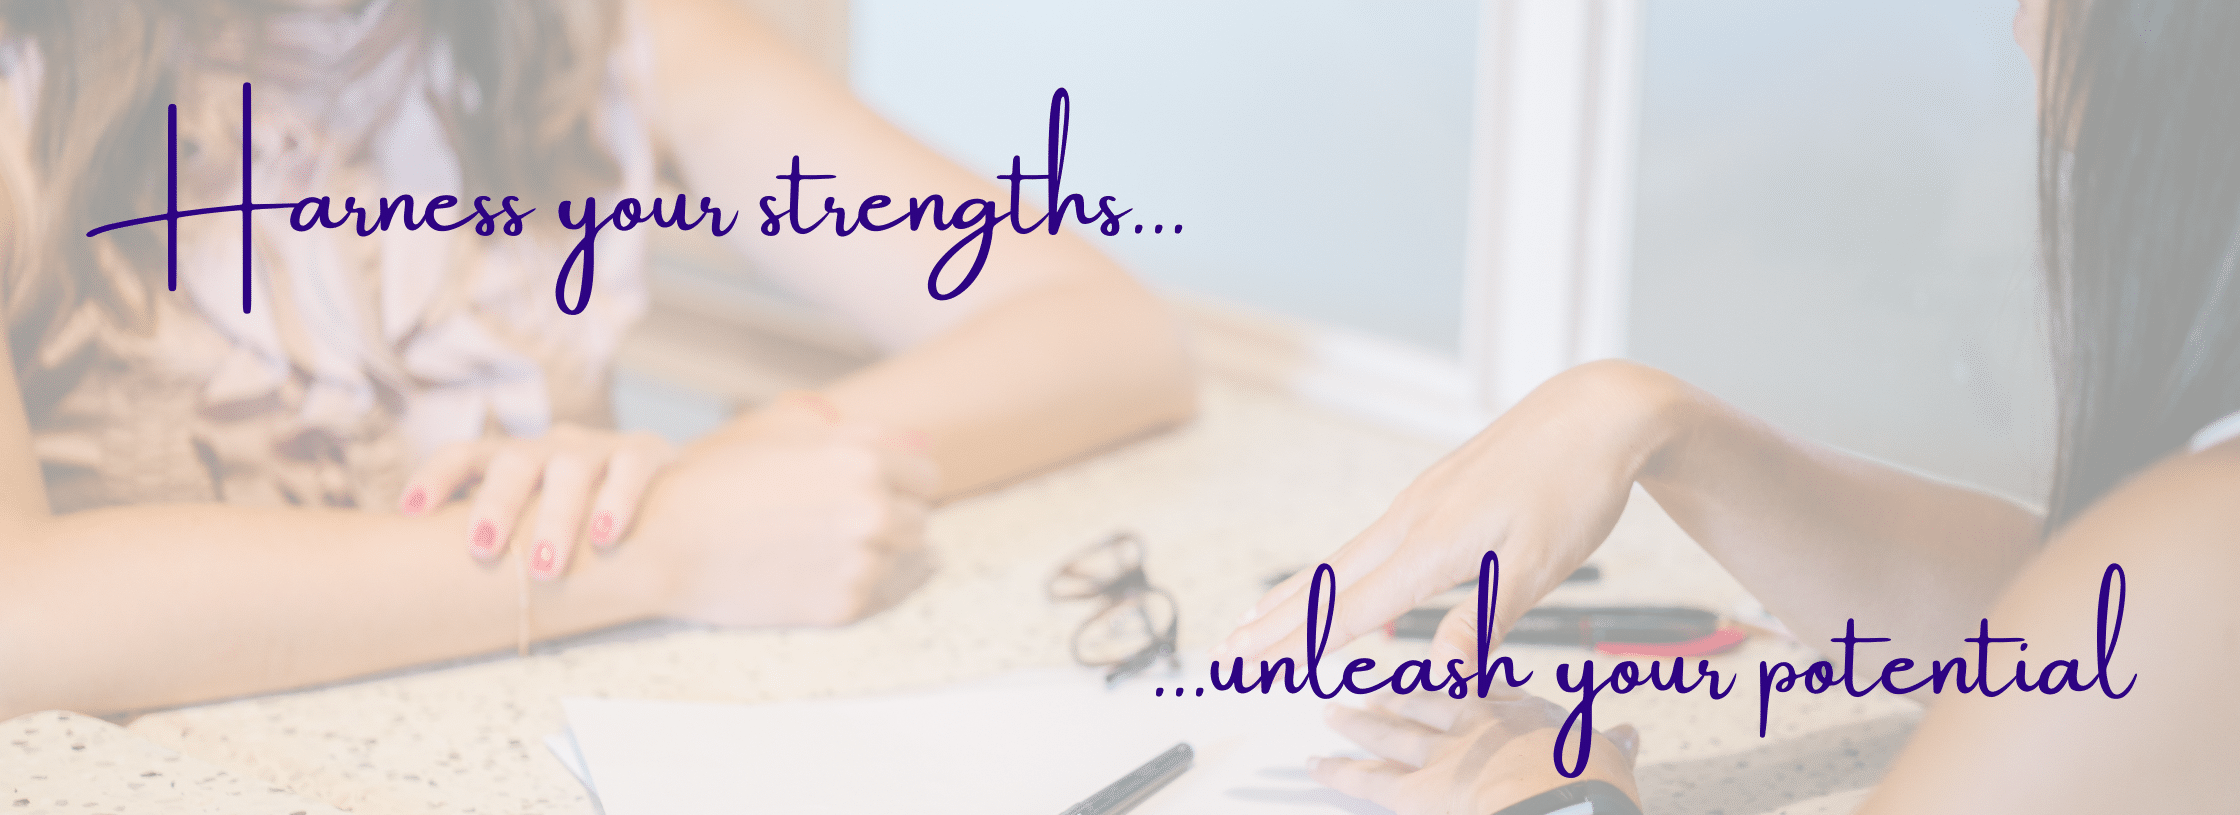 Photo of two women's arms one a table, with text 'Harness your strengths, unleash your potential'. Banner picture for the Leadership and Executive Coaching, Training and Facilitation website of Daria Williamson